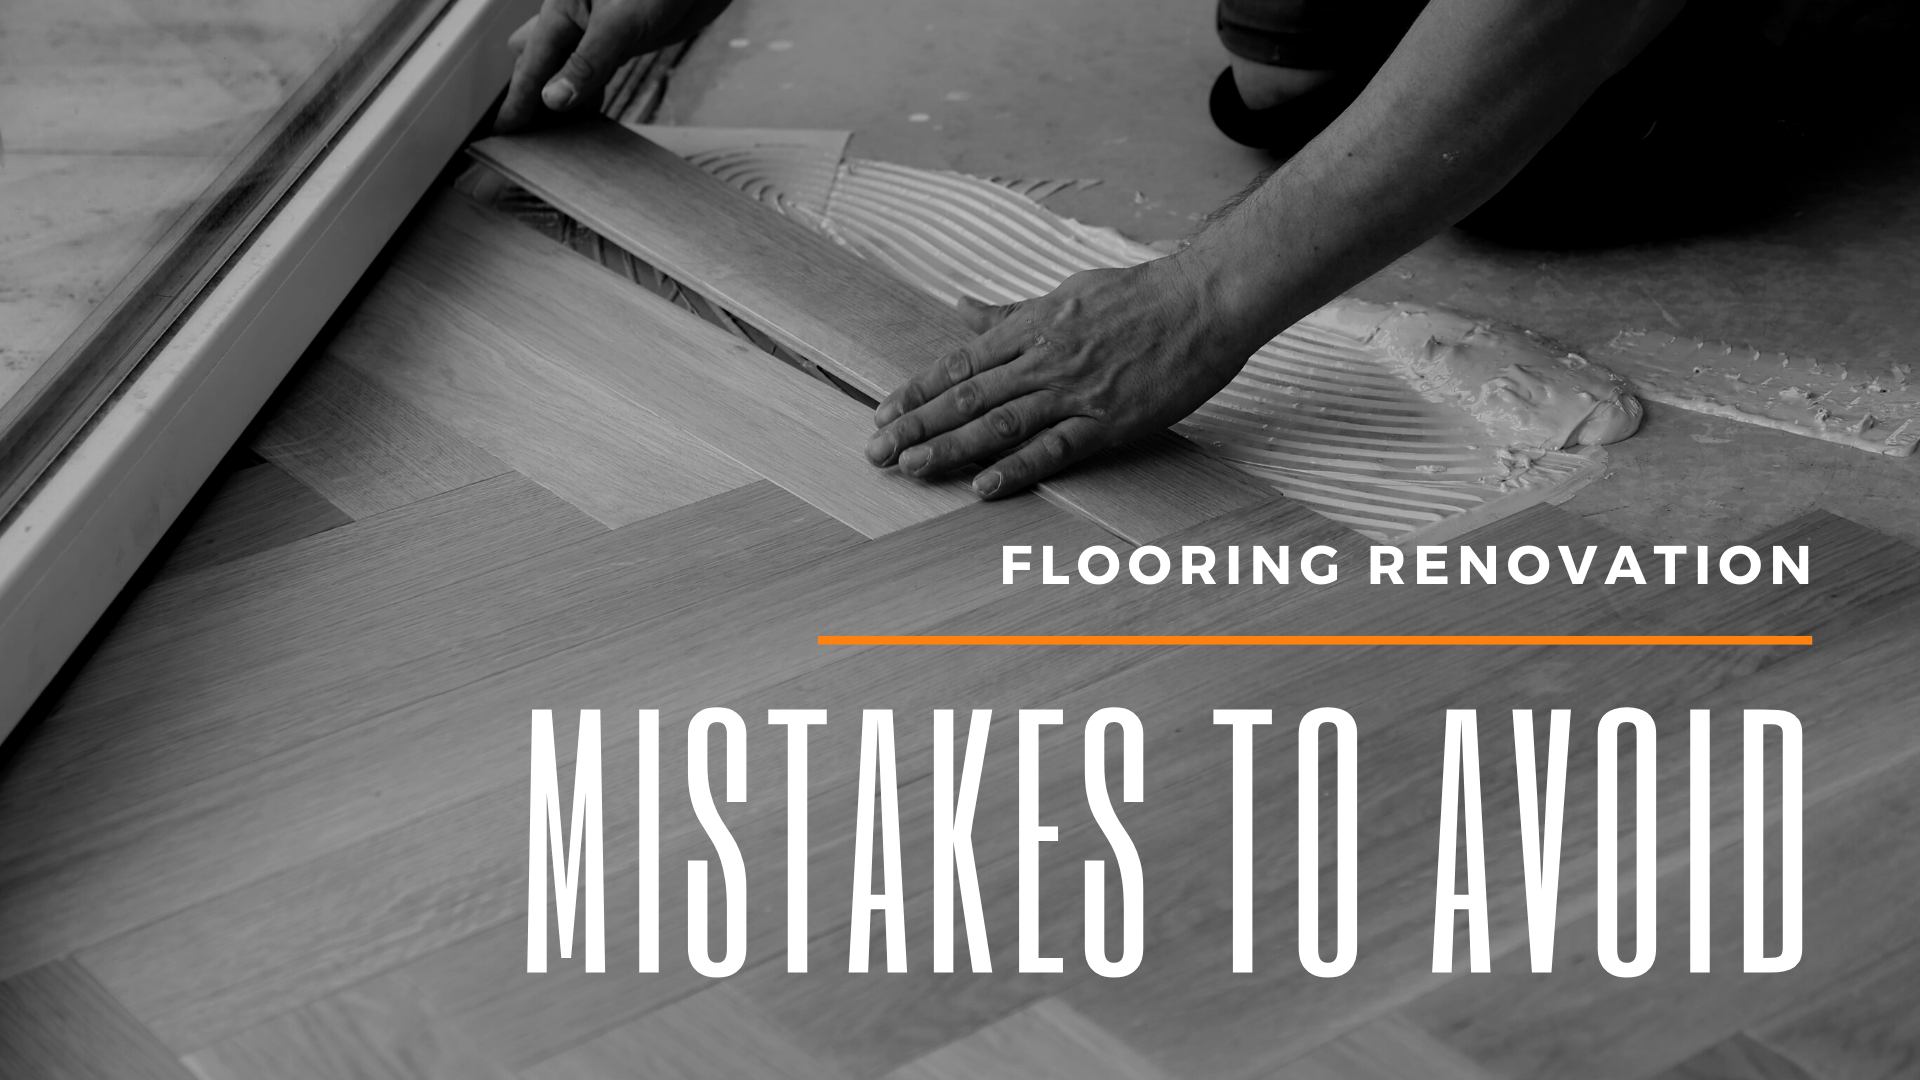 Flooring Renovation Mistakes to Avoid